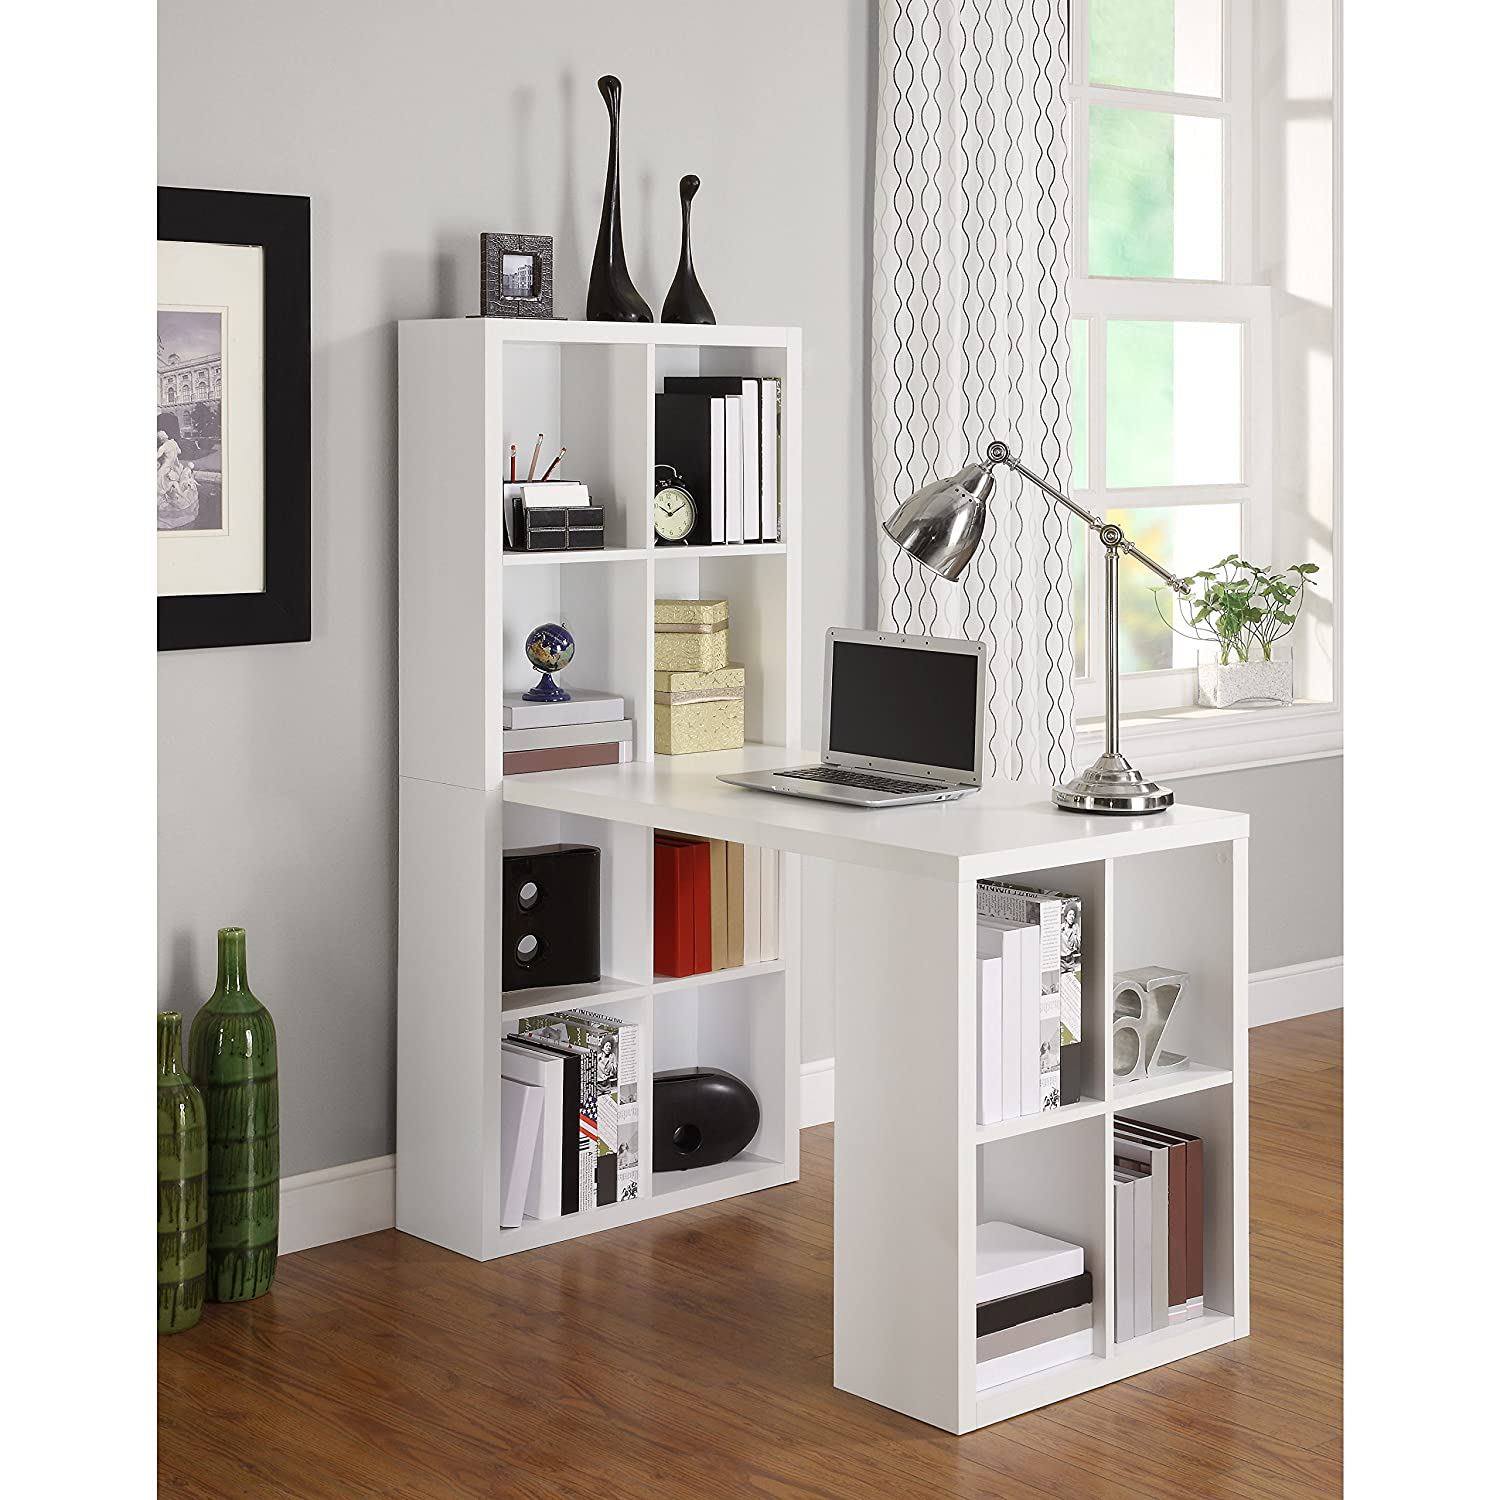 talk w forum construction pin corner remodeling contractor bookcase desk and professional cabinets bookcases